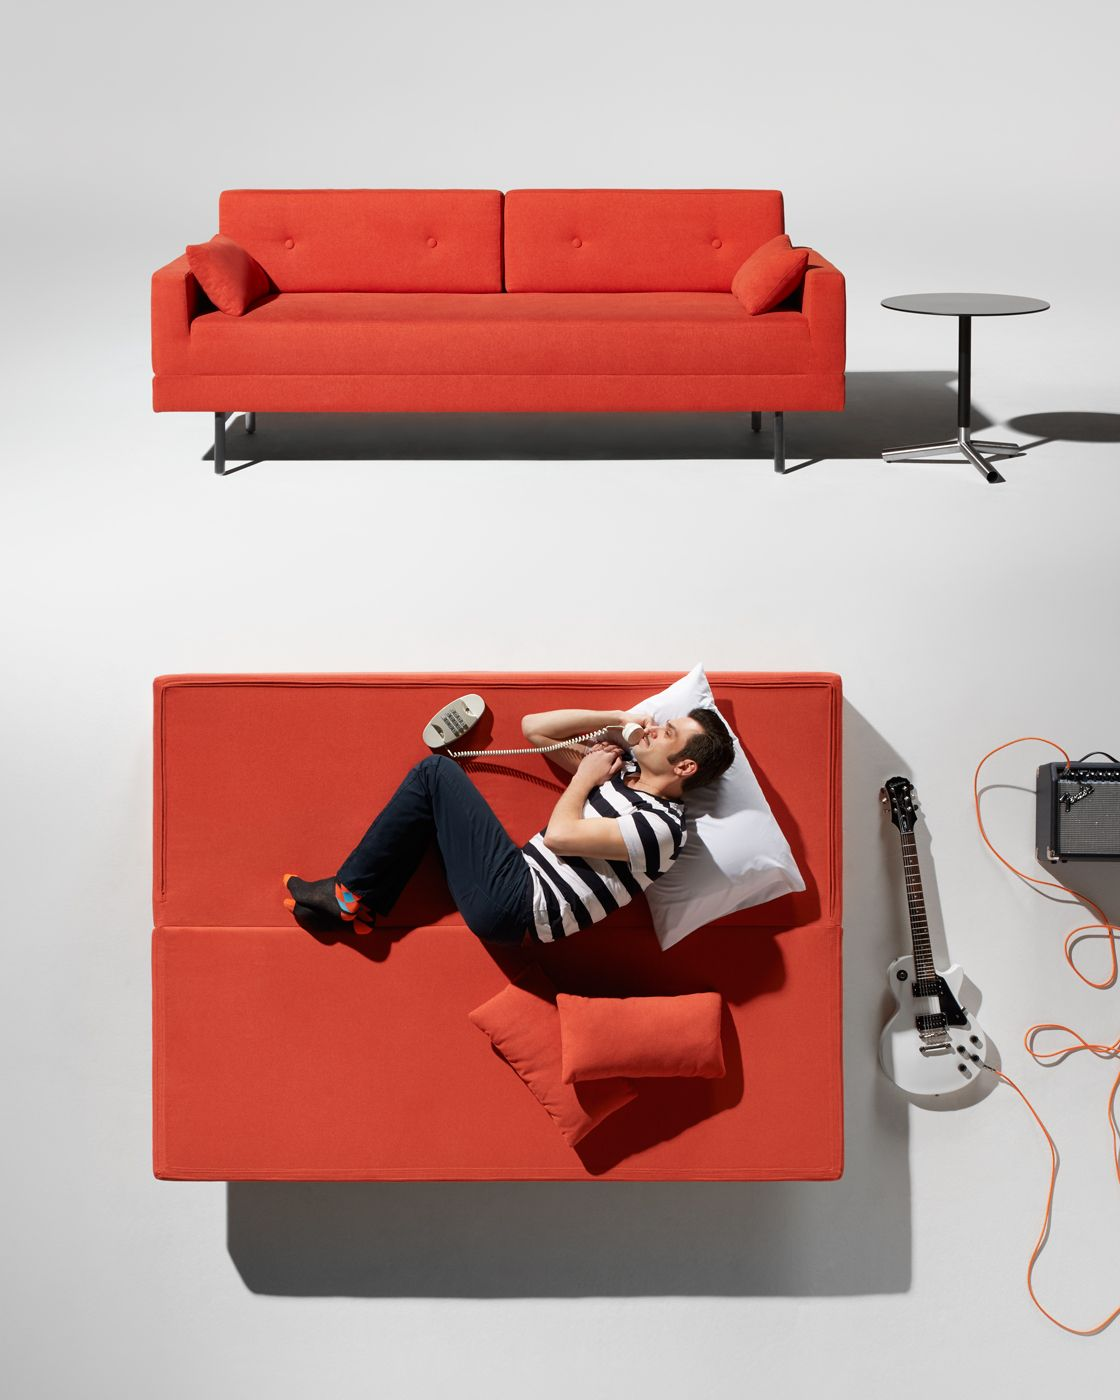 One Night Stand Sleeper Sofa Instant Sleepover Enabler Our Goal Was To Design A Modern That Doesn T Look Like